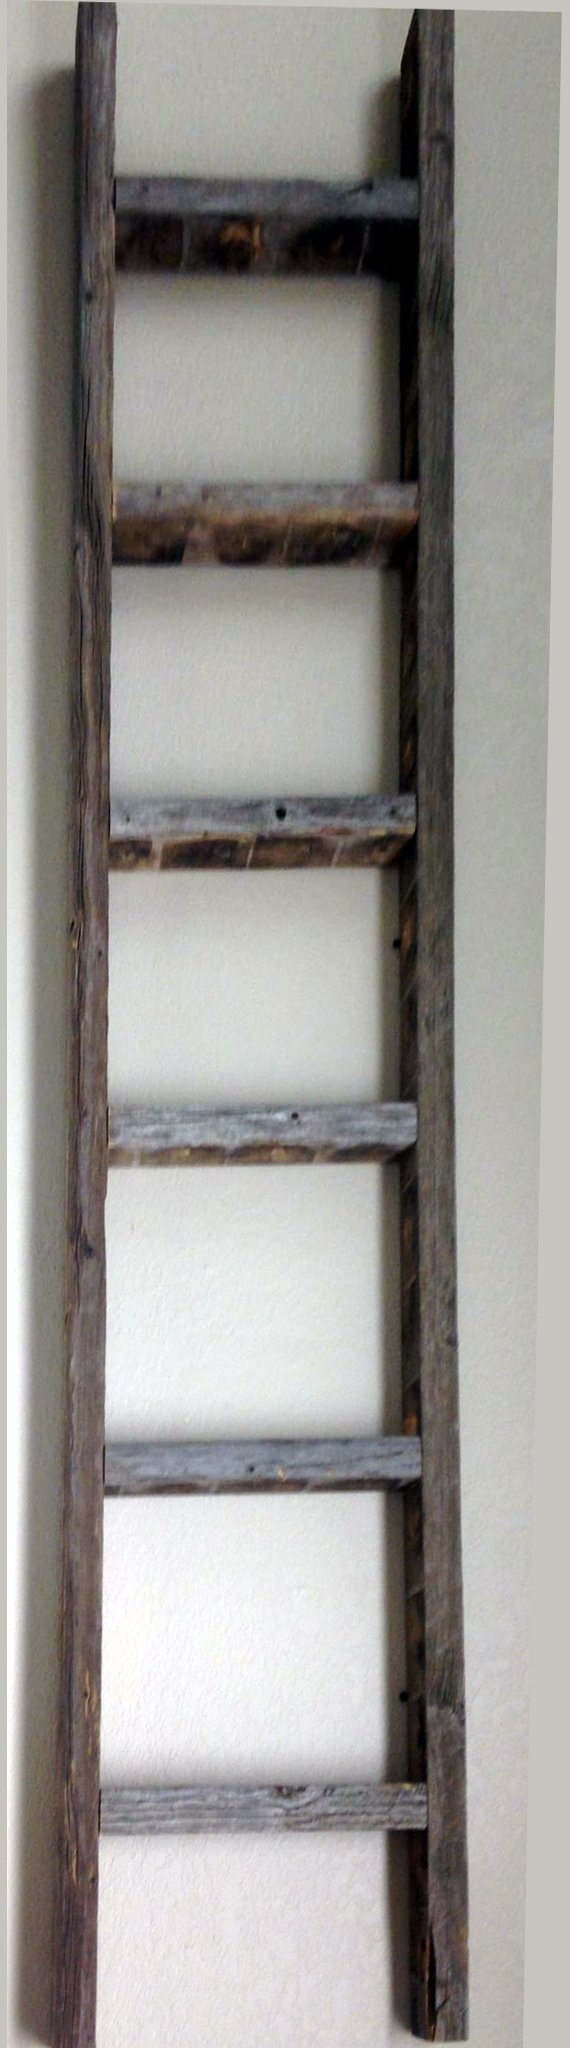 Decorative ladder reclaimed old wooden ladder foot rustic barn